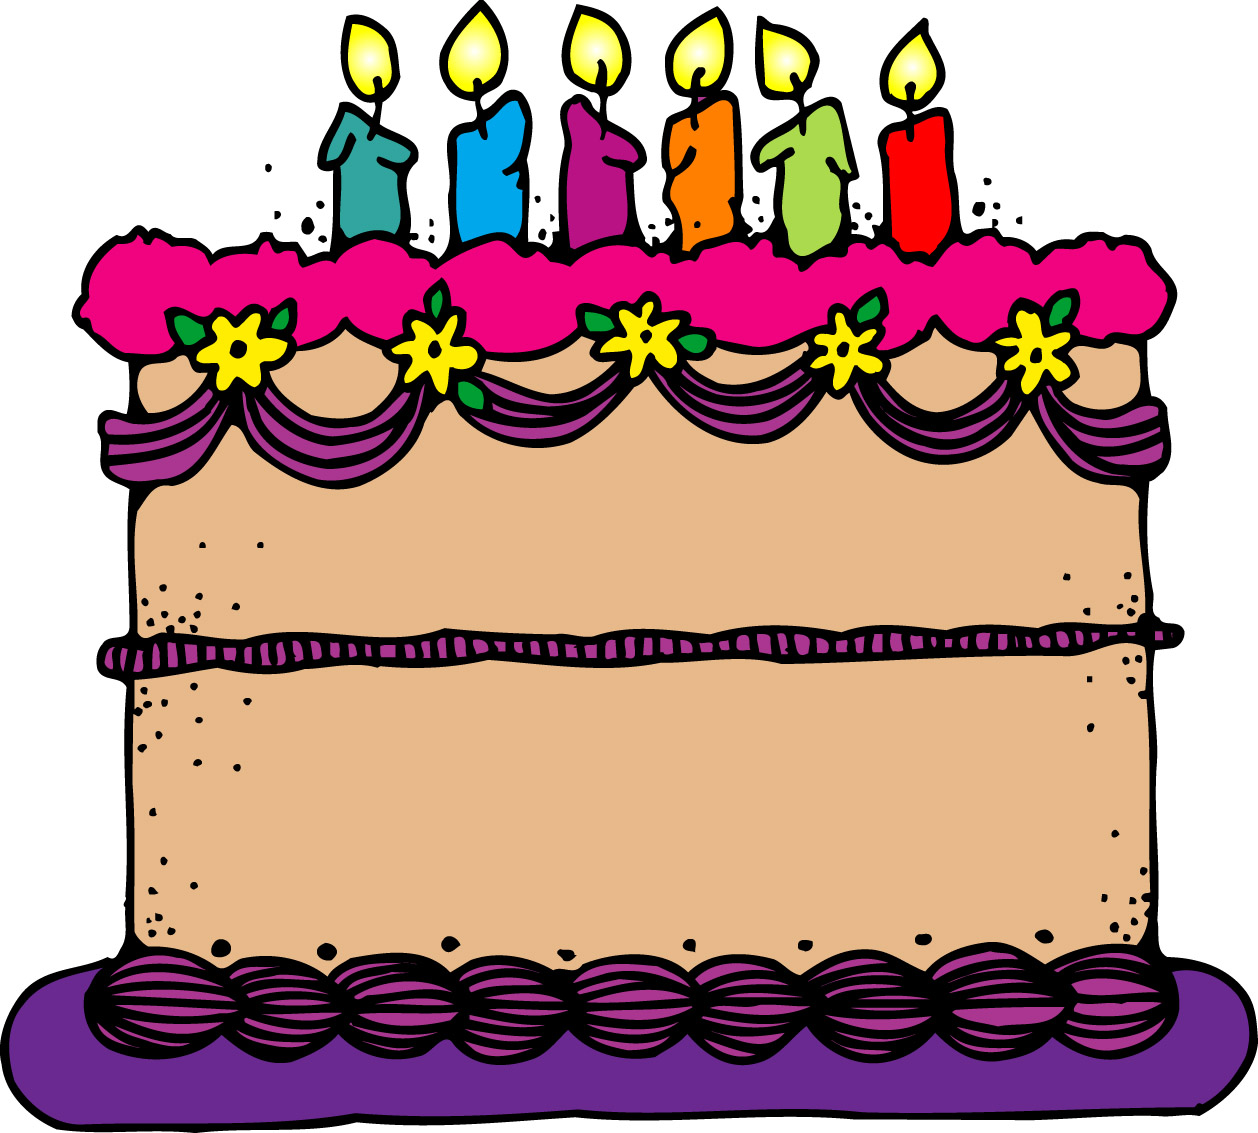 Birthday Cake Clip Art Free .-Birthday cake clip art free .-8